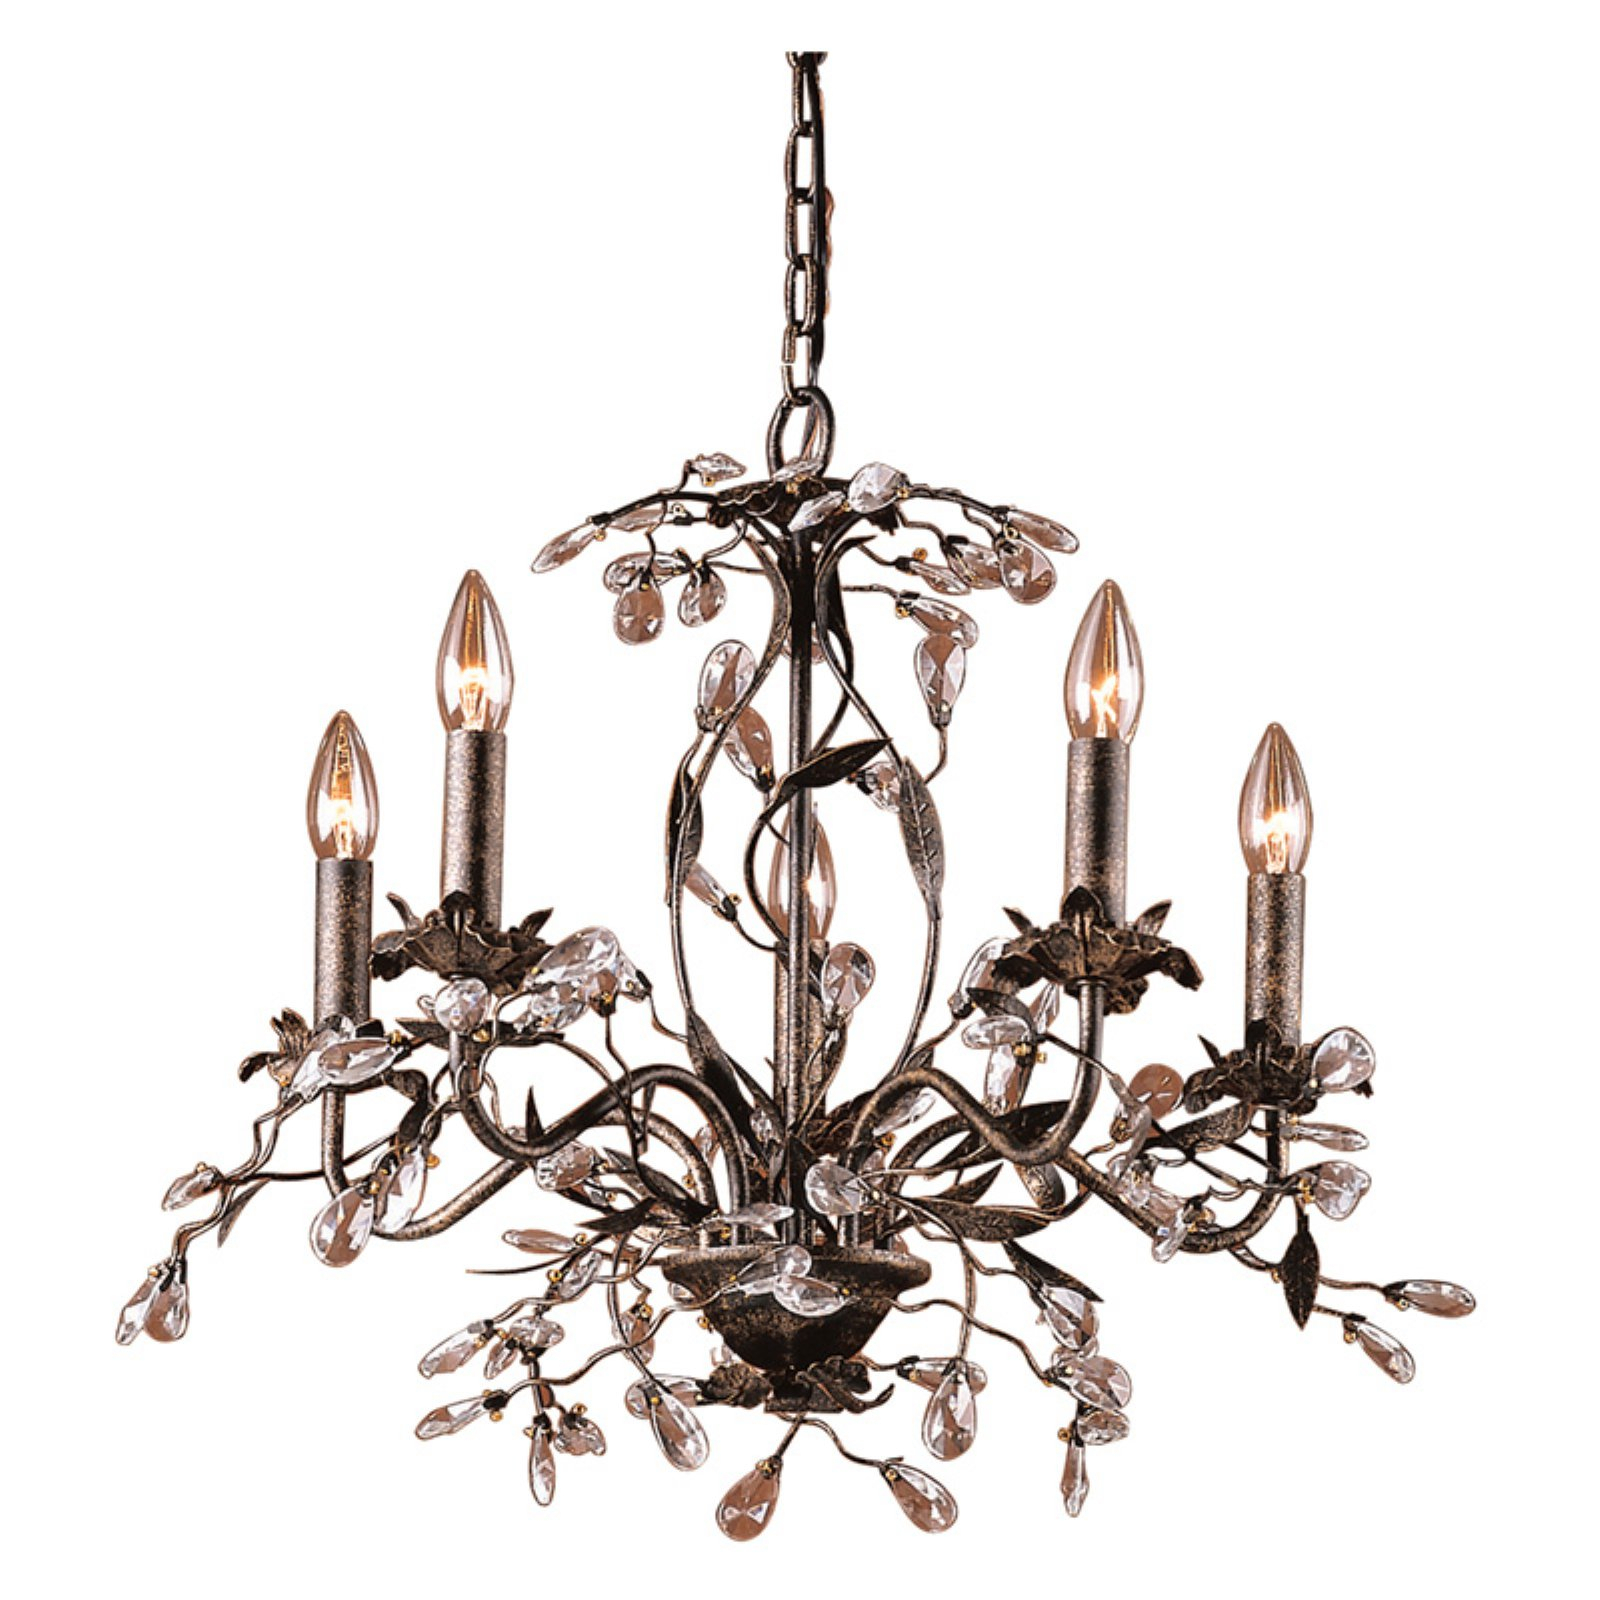 Elk Lighting Circeo Chandelier 8053/5   21W In. | Products Inside Hesse 5 Light Candle Style Chandeliers (Photo 9 of 30)